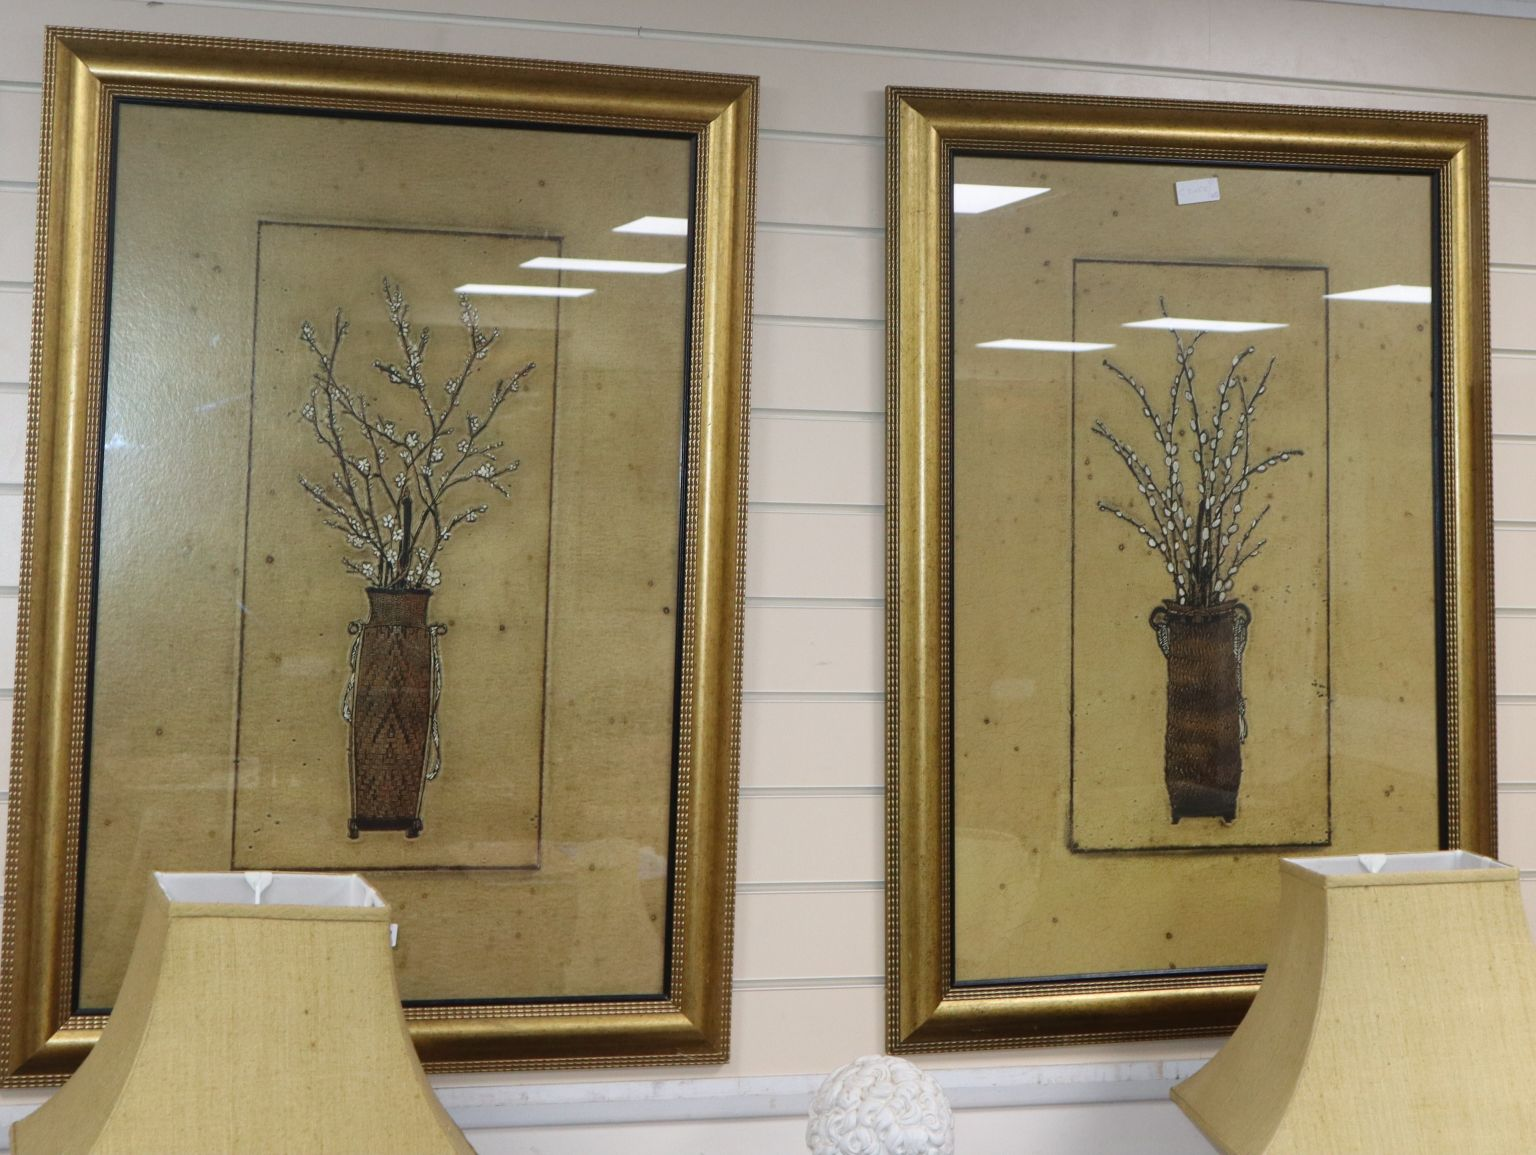 A pair of large coloured prints, blossom sprigs in vases, 88 x 58cm